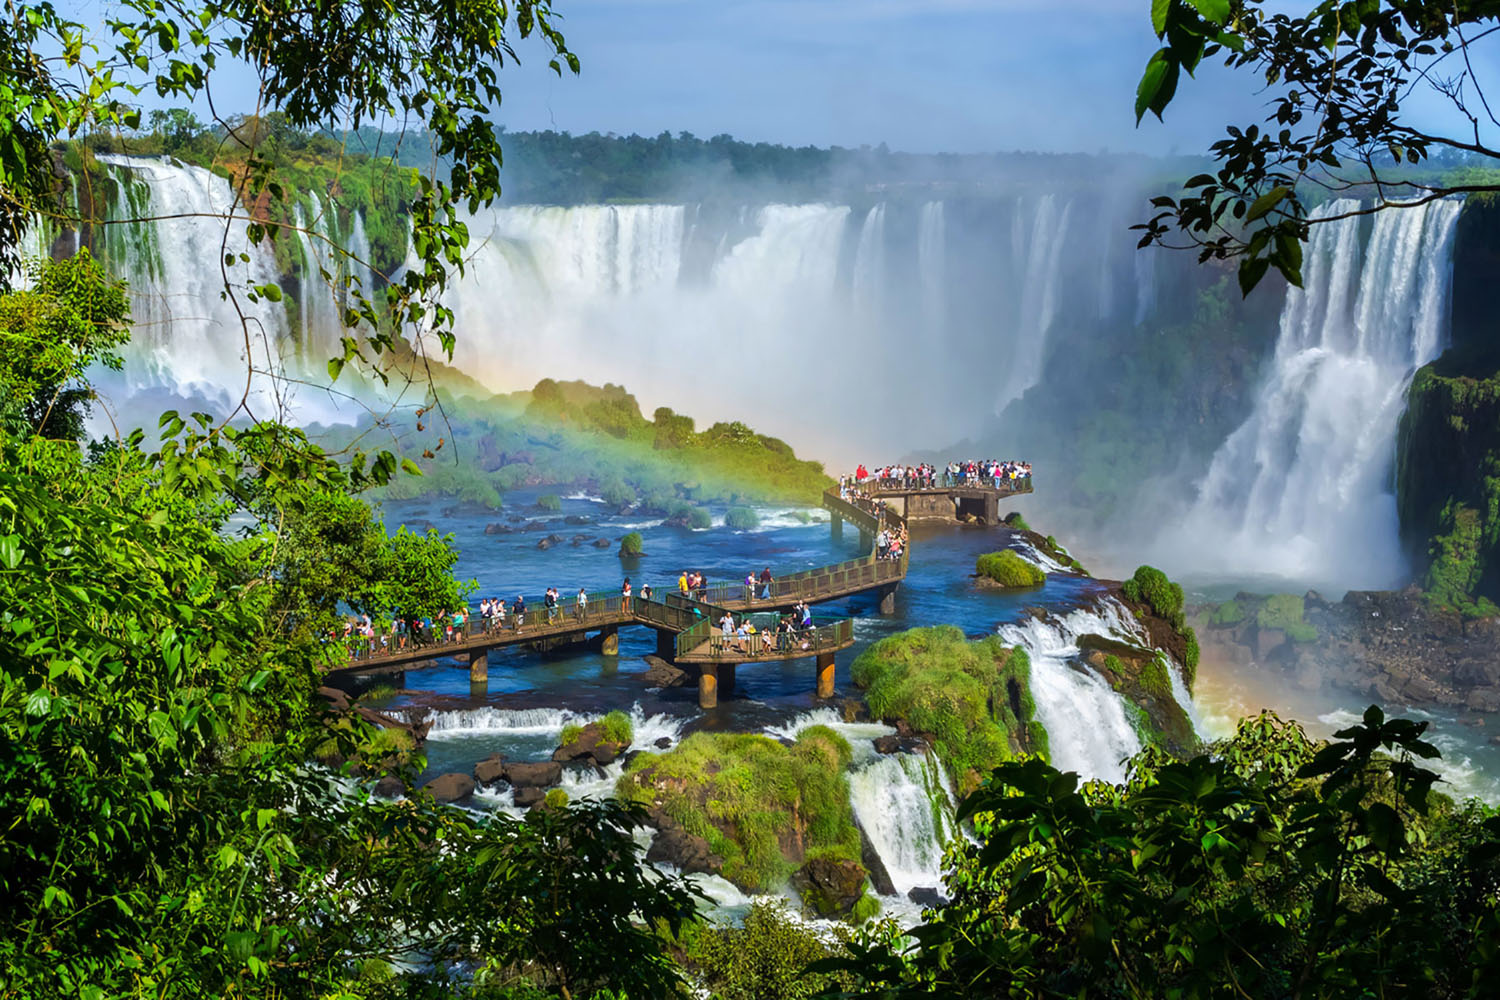 Iguazu Falls near the border of Argentina and Brazil.